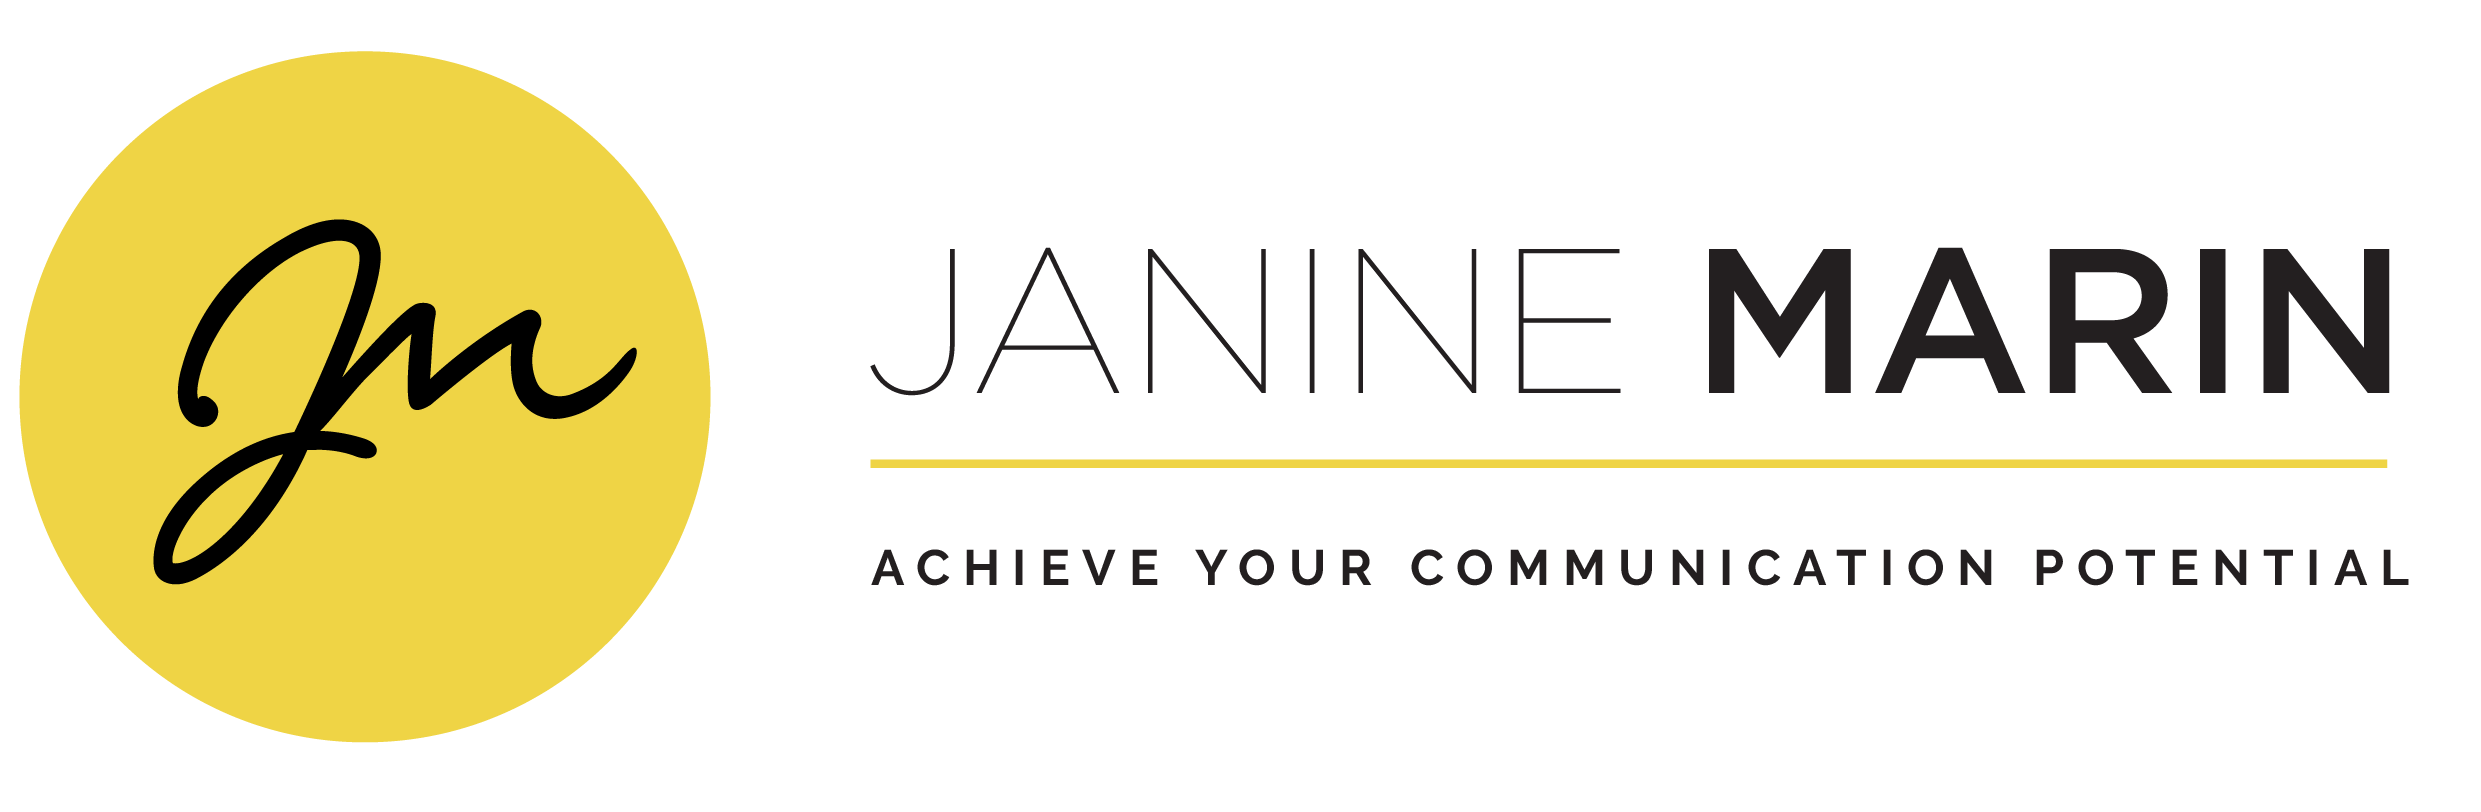 Janine Marin - communications expert